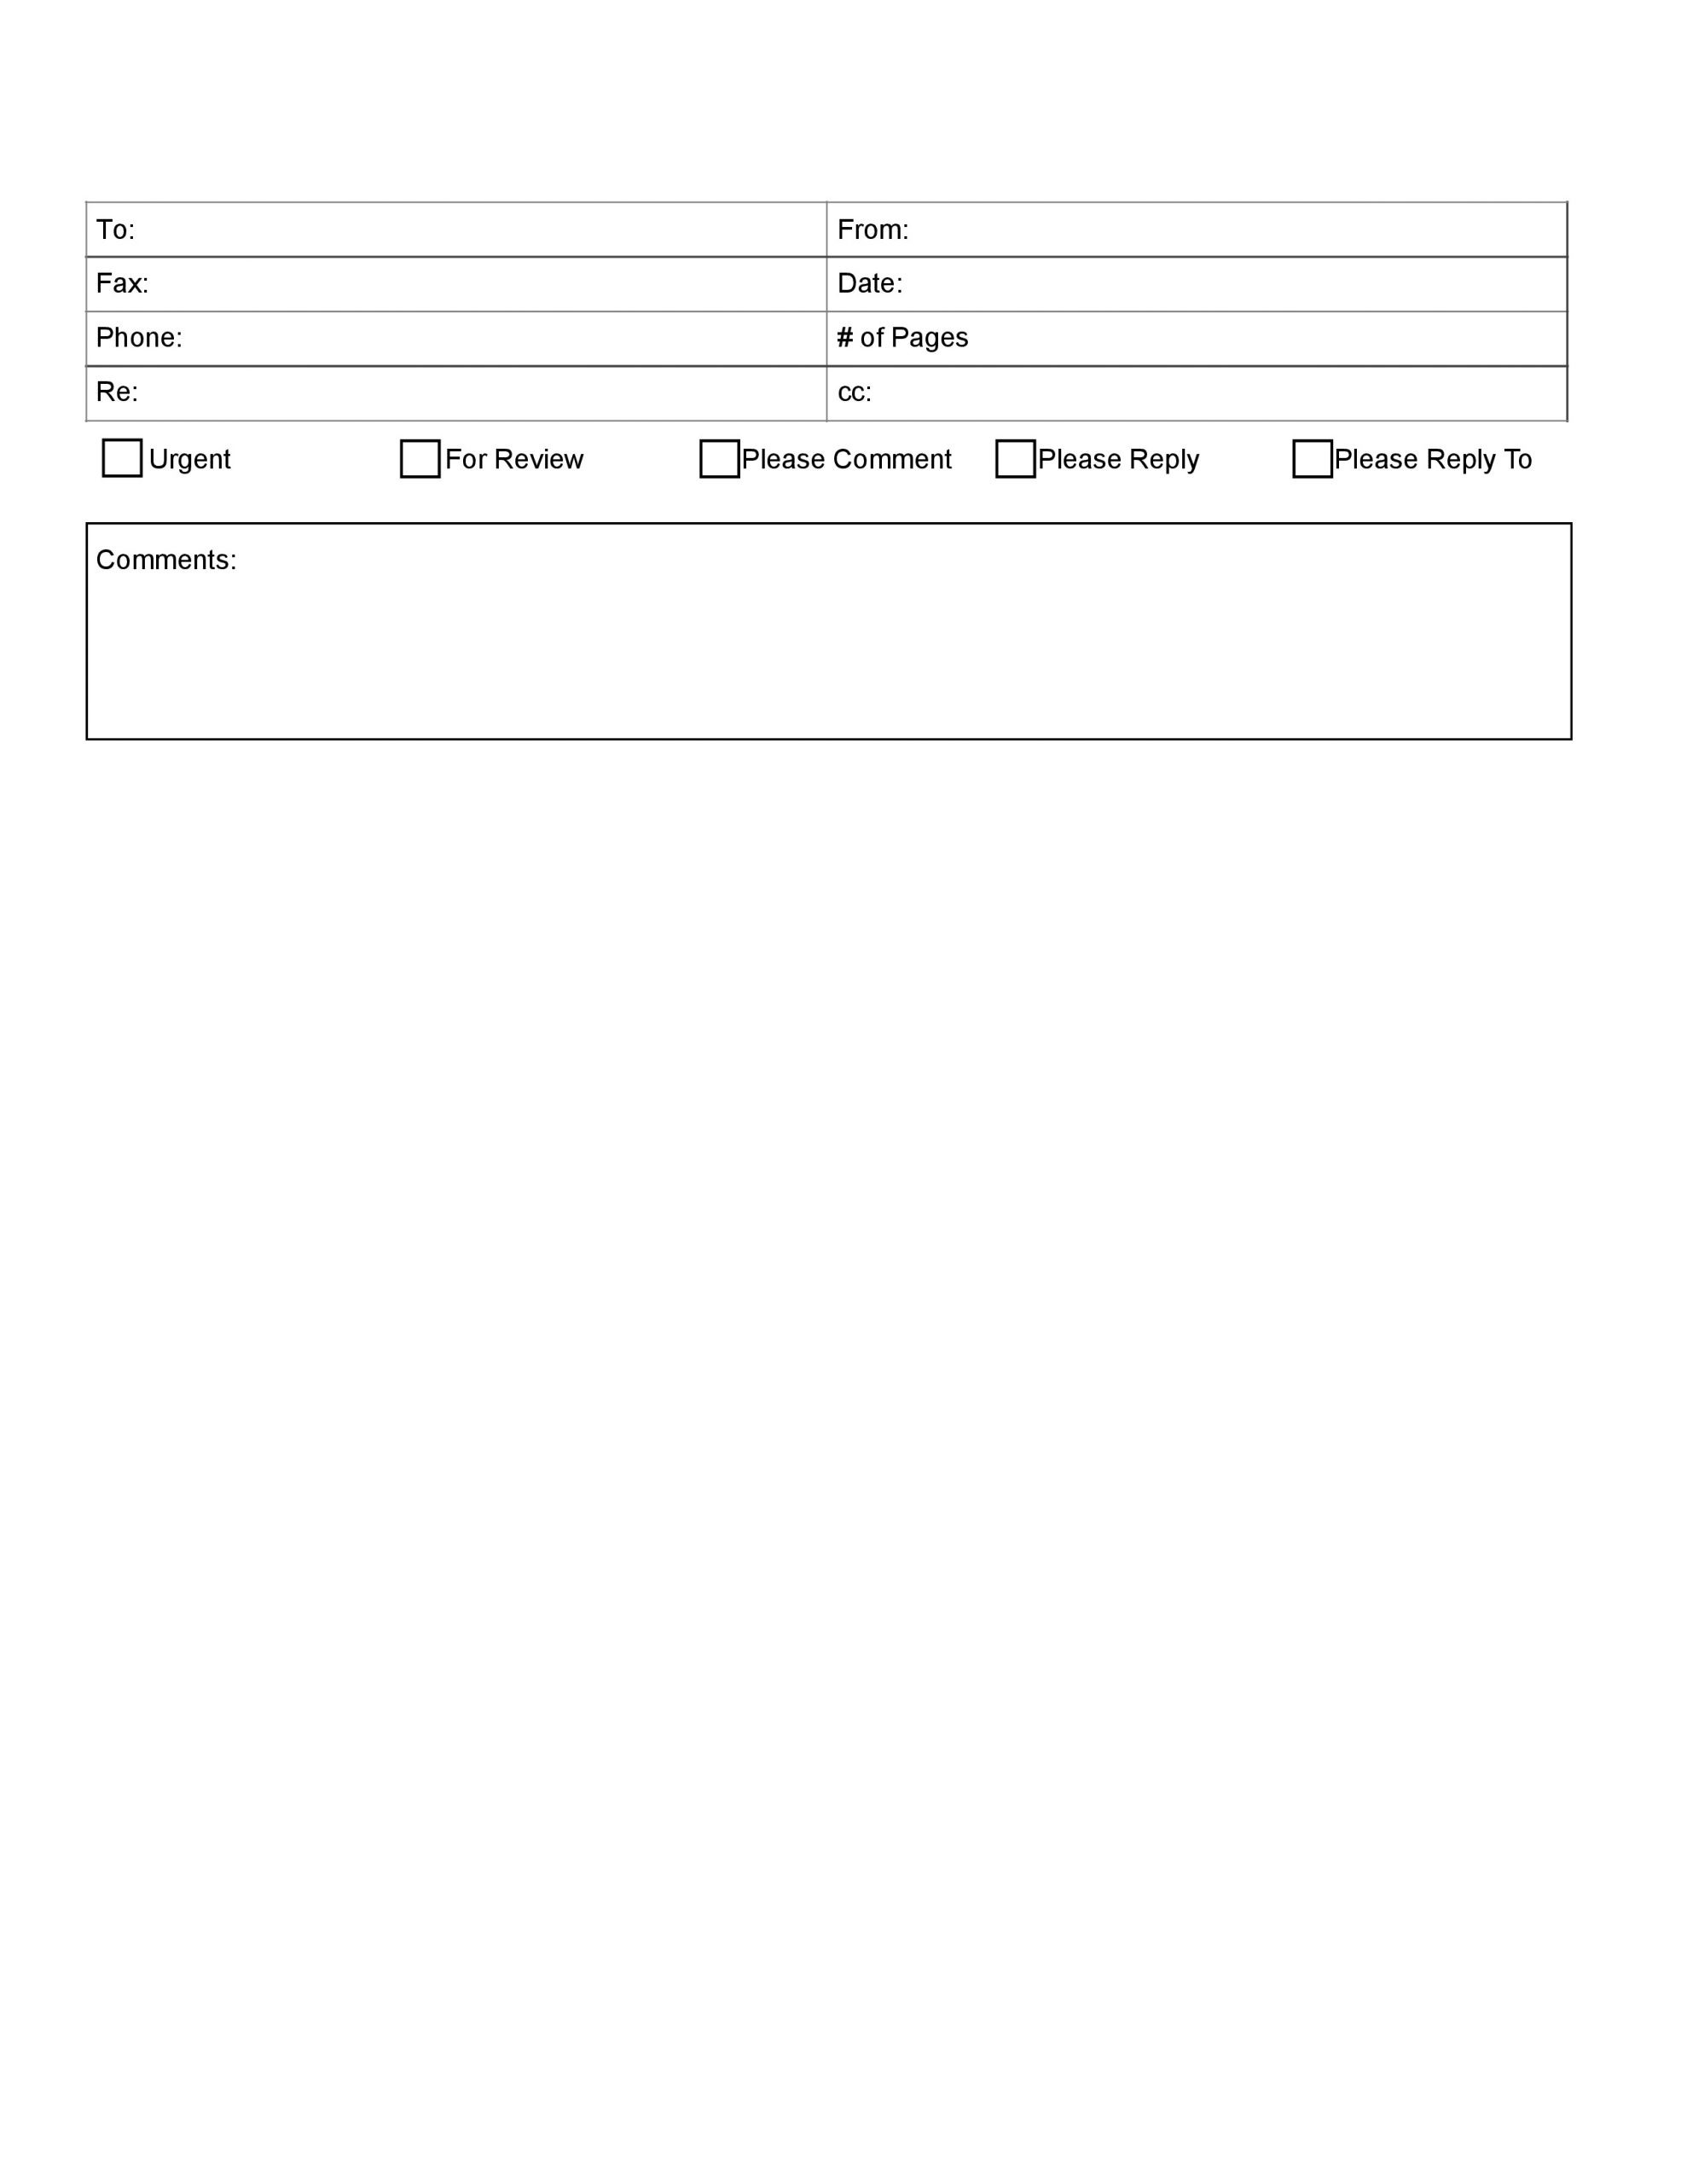 free fax cover sheet 01